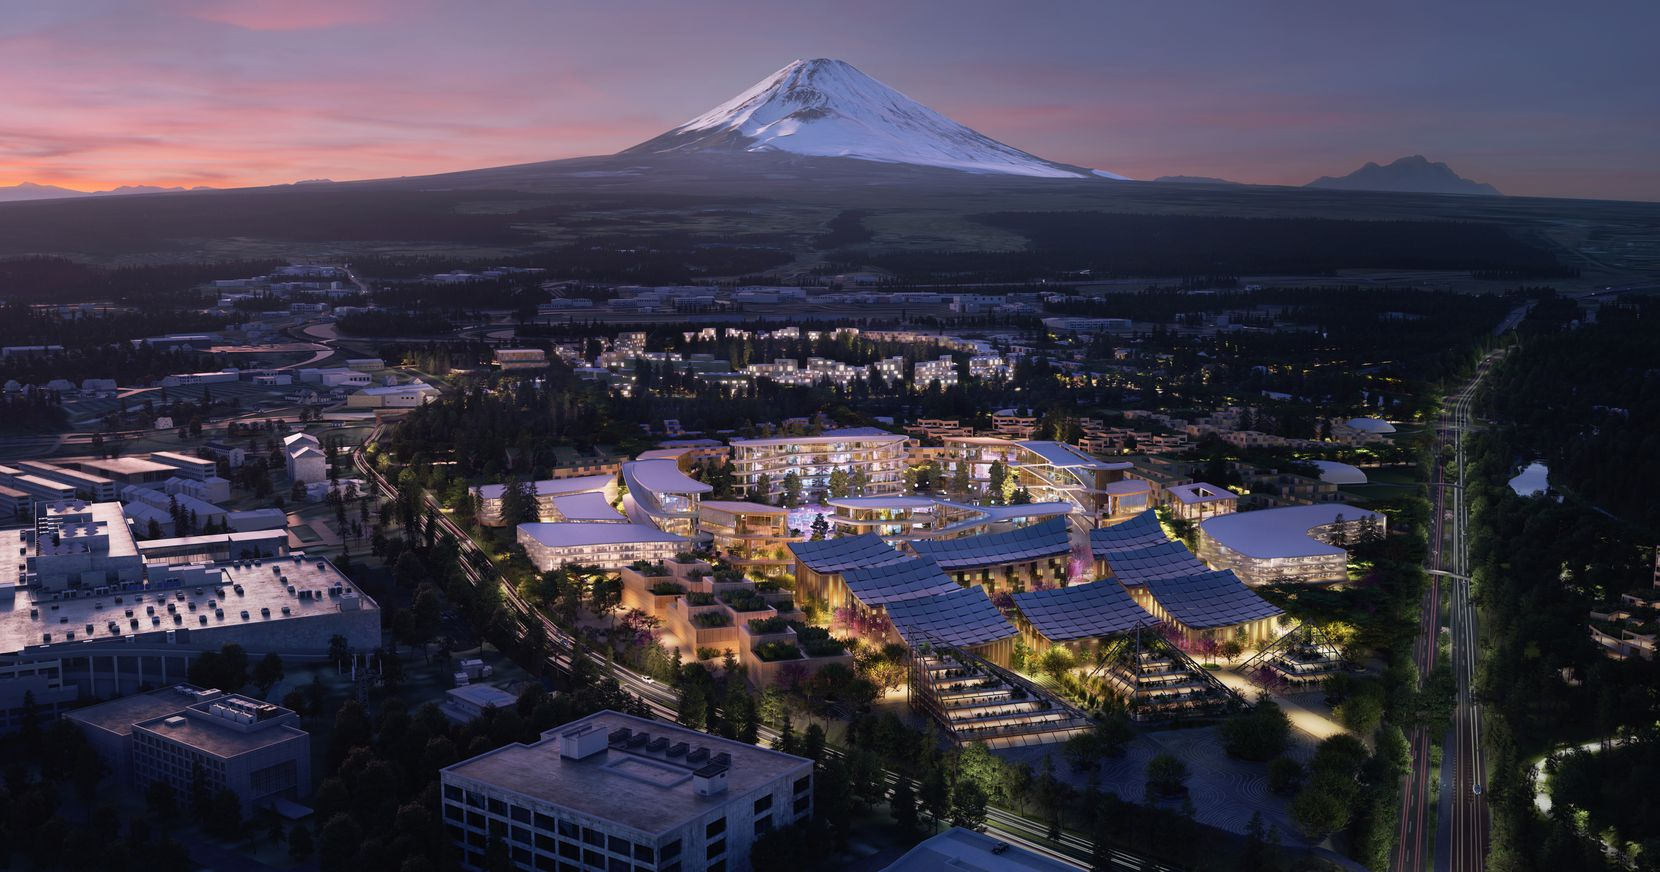 Toyota intends to build a prototype city of the future on a 175-acre site at the base of Mt. Fuji in Japan. It'll feature a fully connected ecosystem powered by hydrogen fuel cells. It also serve as a live laboratory for residents and researchers  to test and develop technologies such as autonomy, robotics, personal mobility, smart homes and artificial intelligence in a real-world environment.